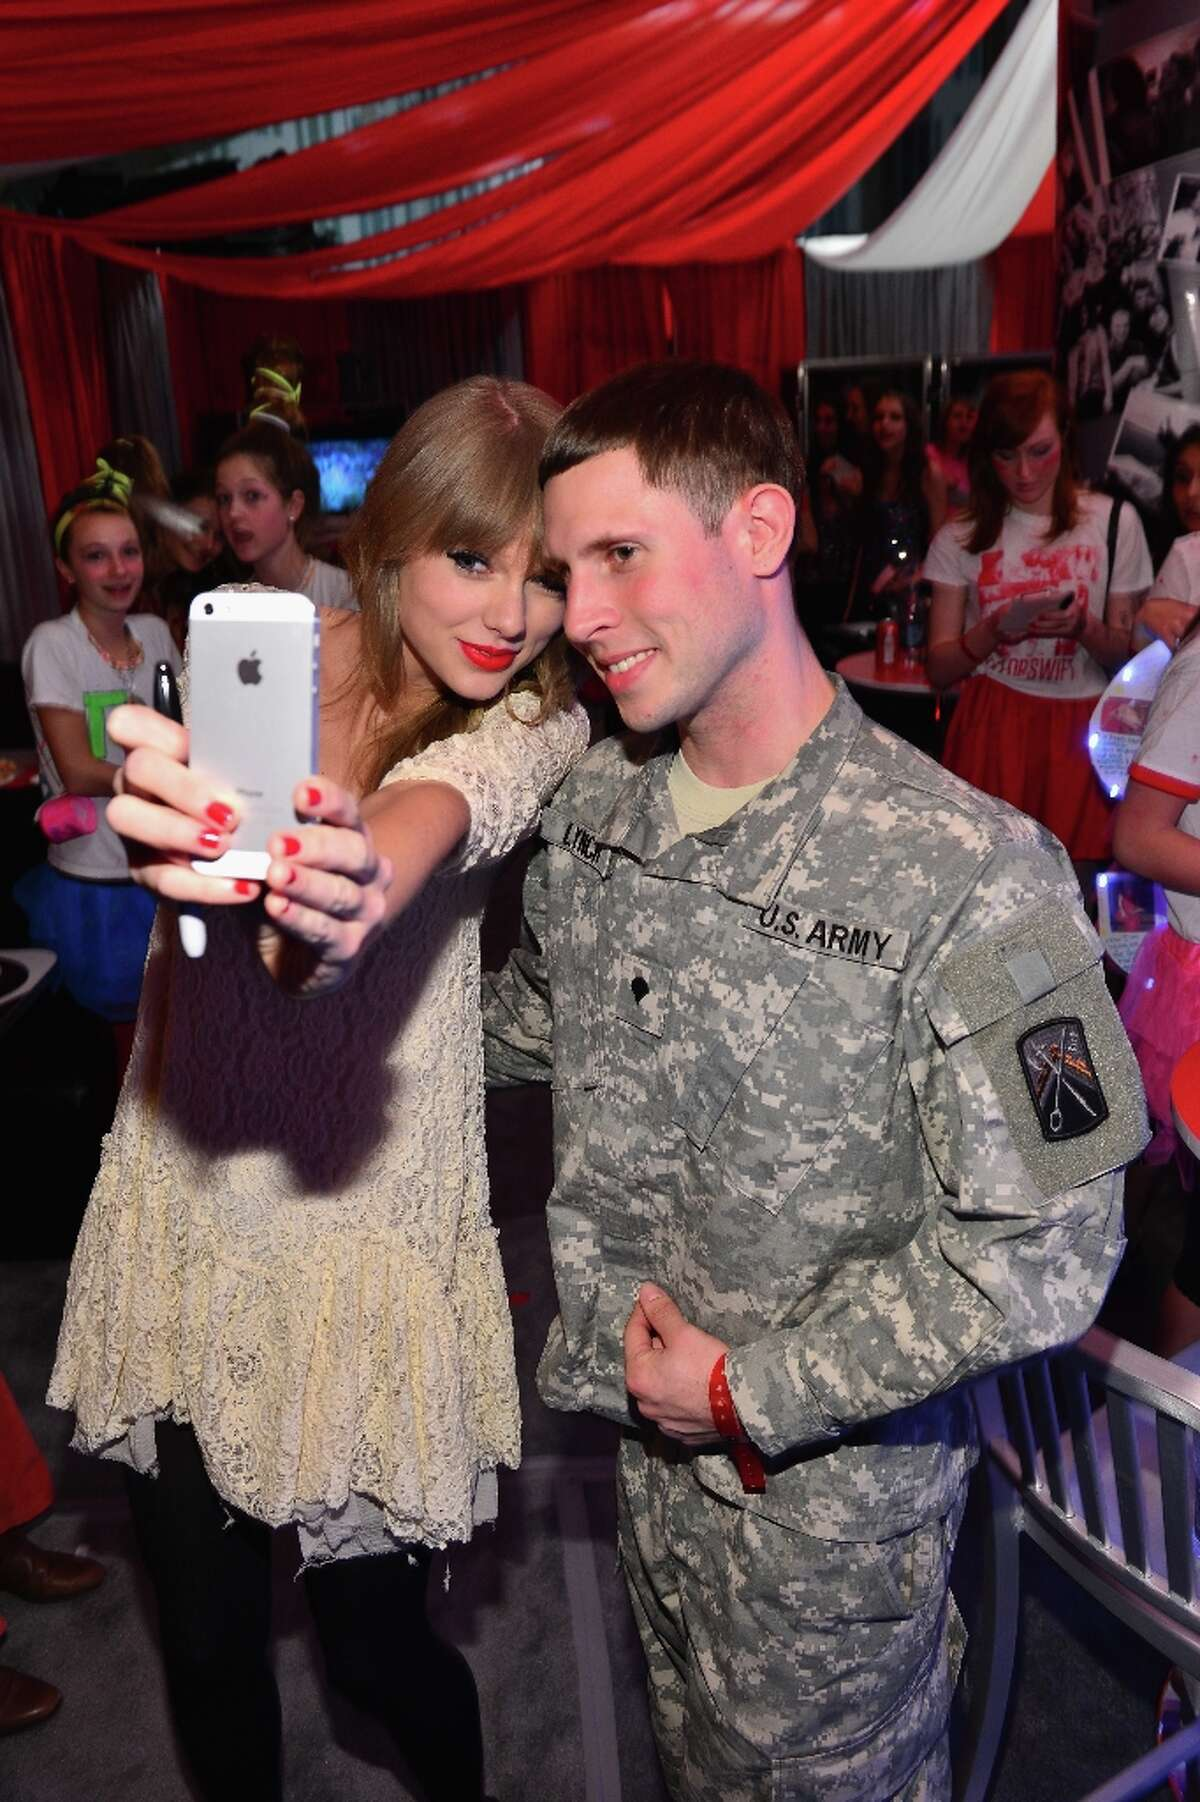 Singer Taylor Swift meets a fan in Club Red after her show at the Prudential Center on March 28, 2013 in Newark, New Jersey.